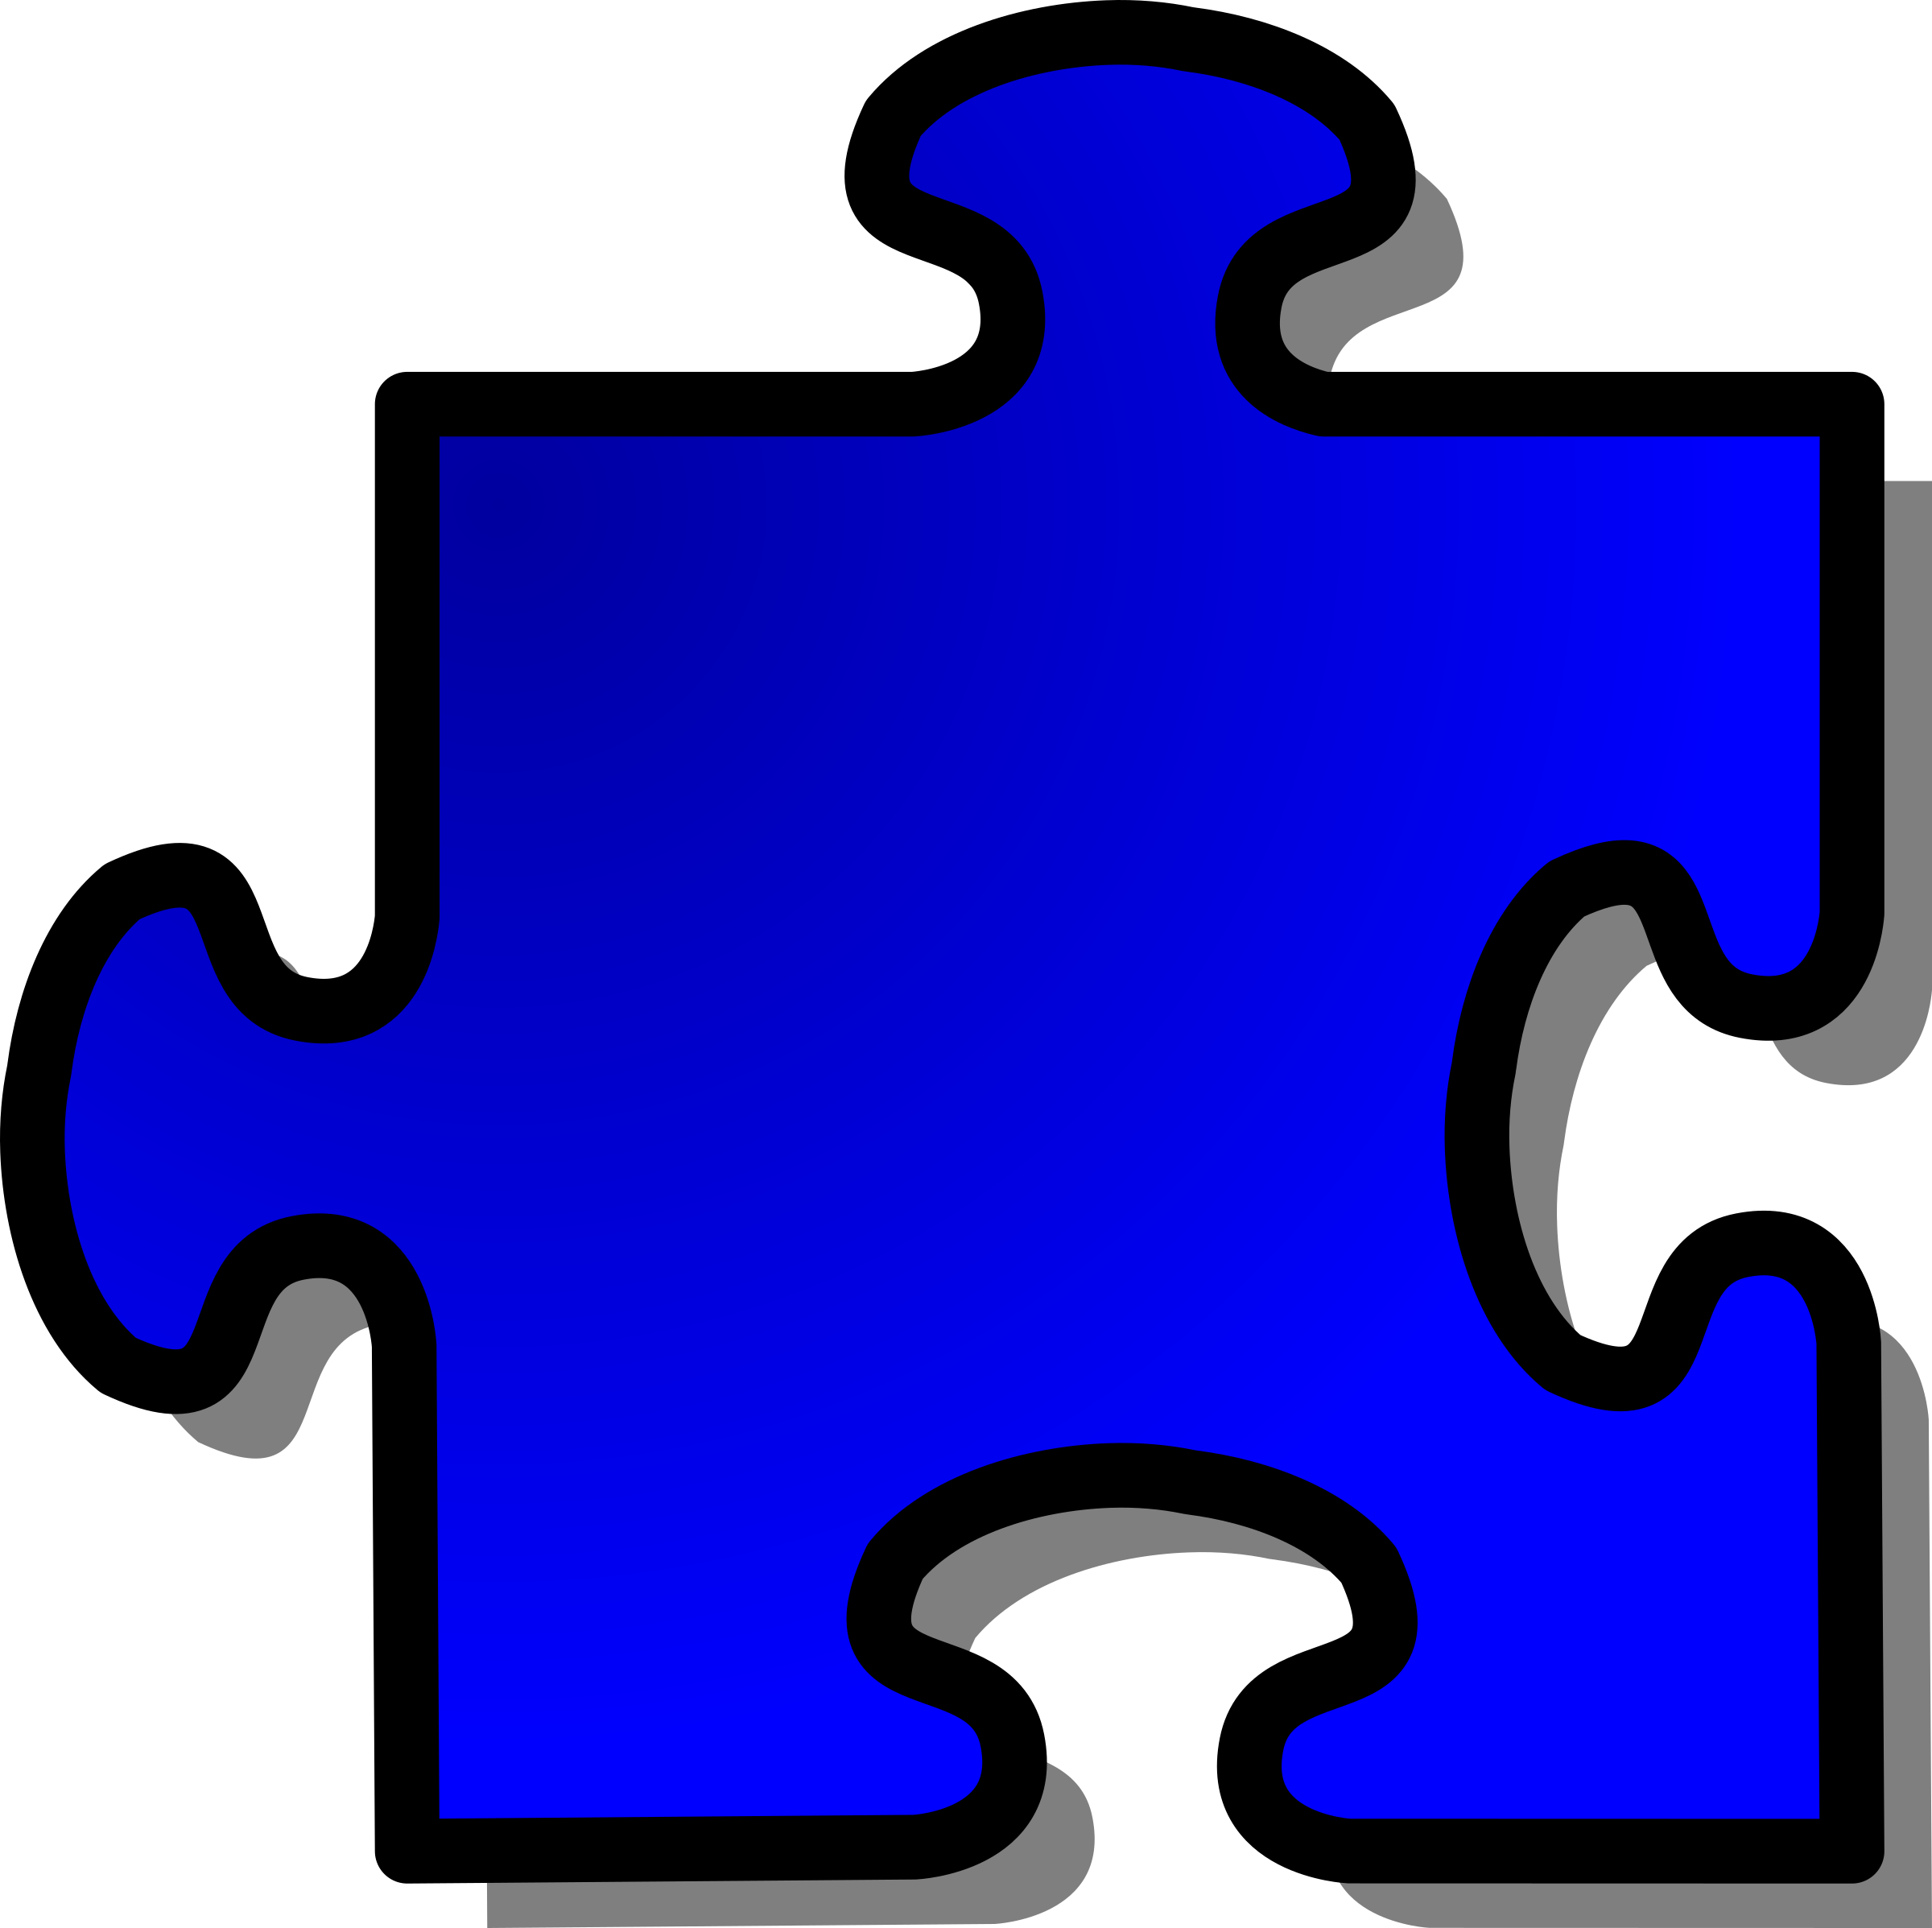 Blue Jigsaw piece 12 by nicubunu